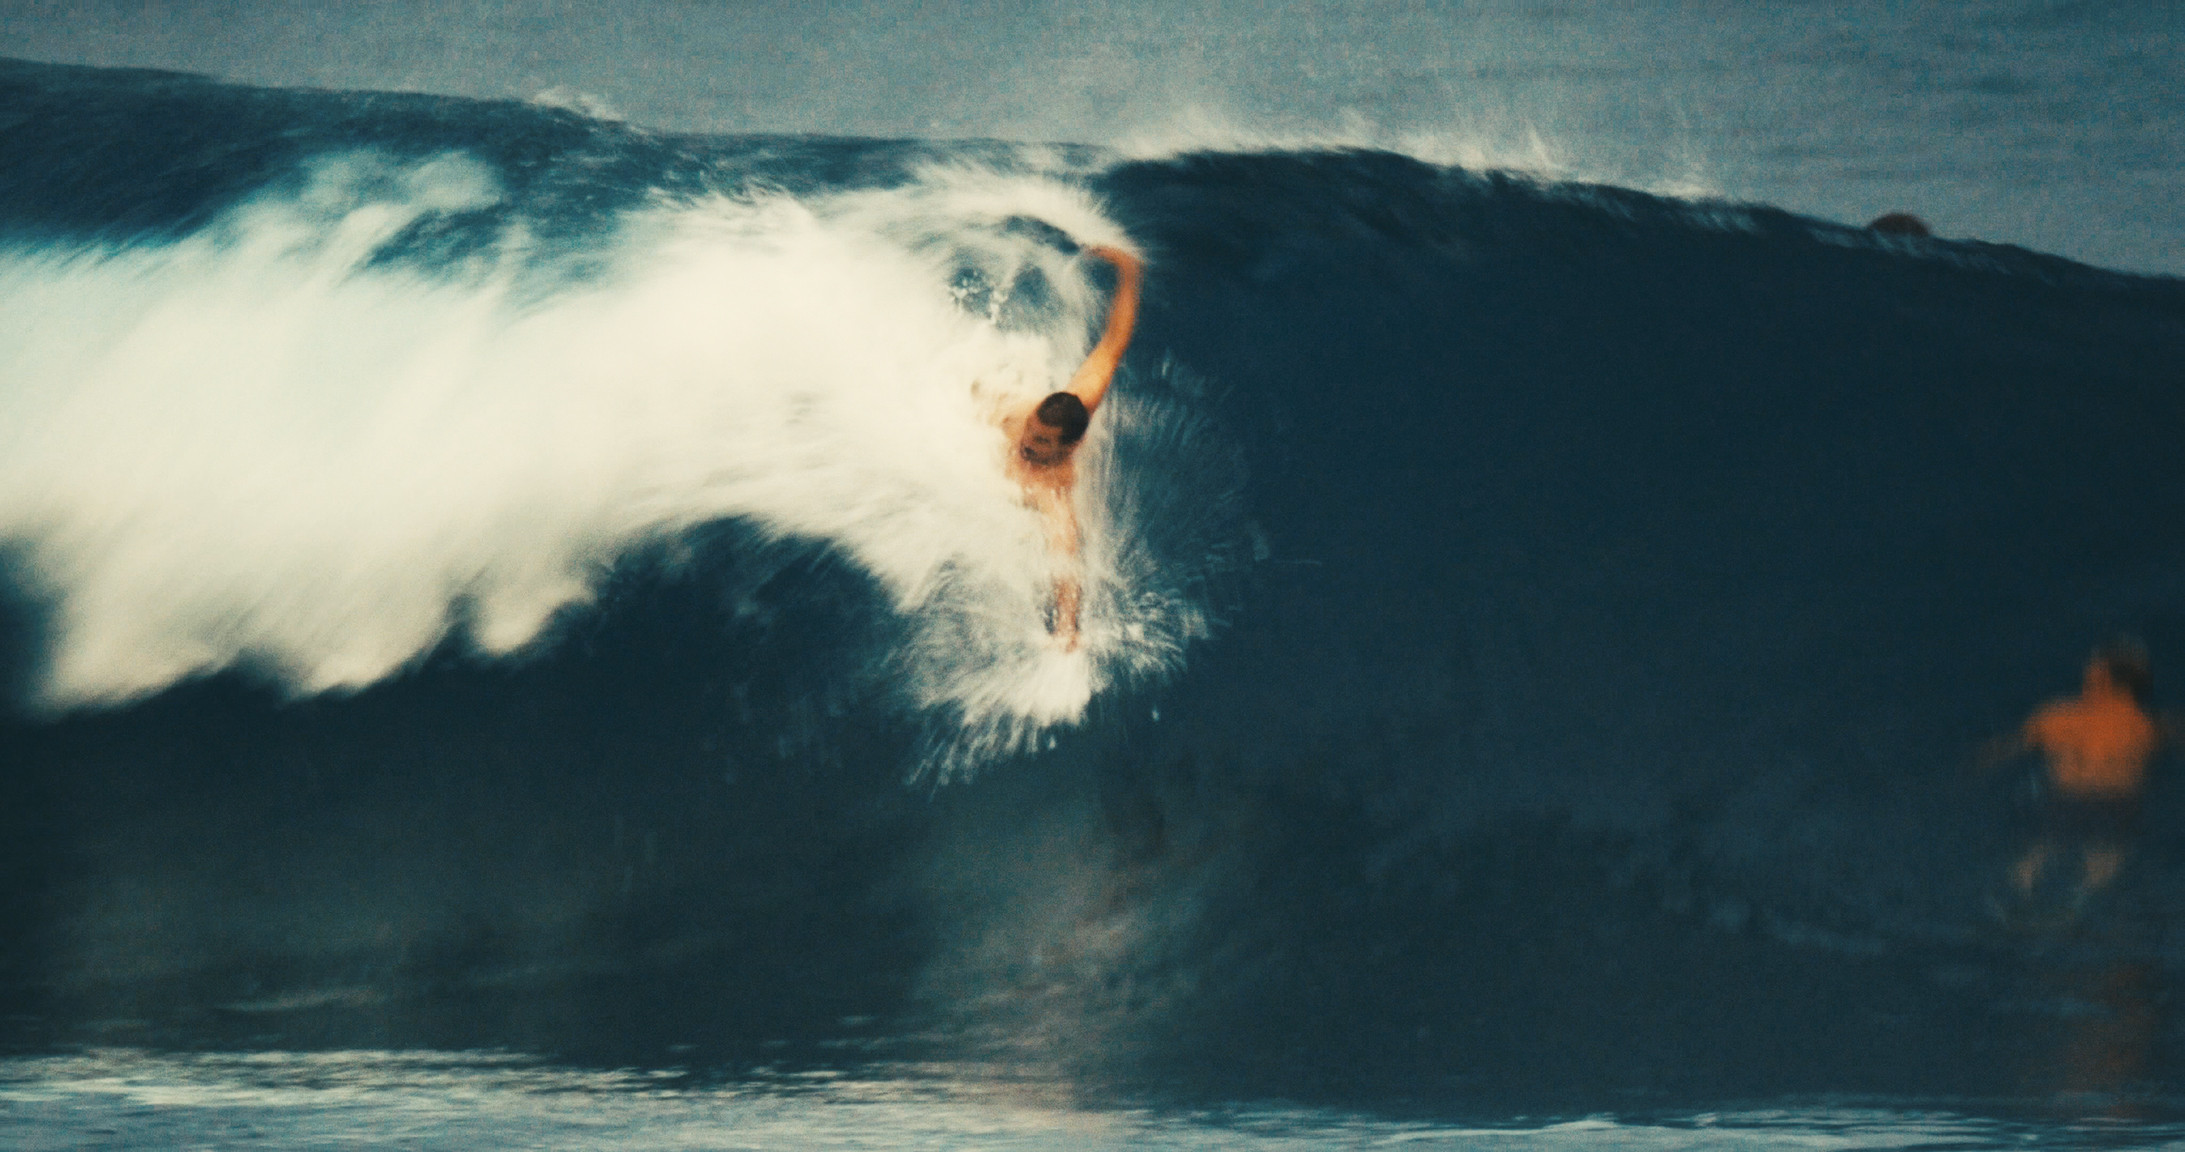 Dave Ford at Pipeline